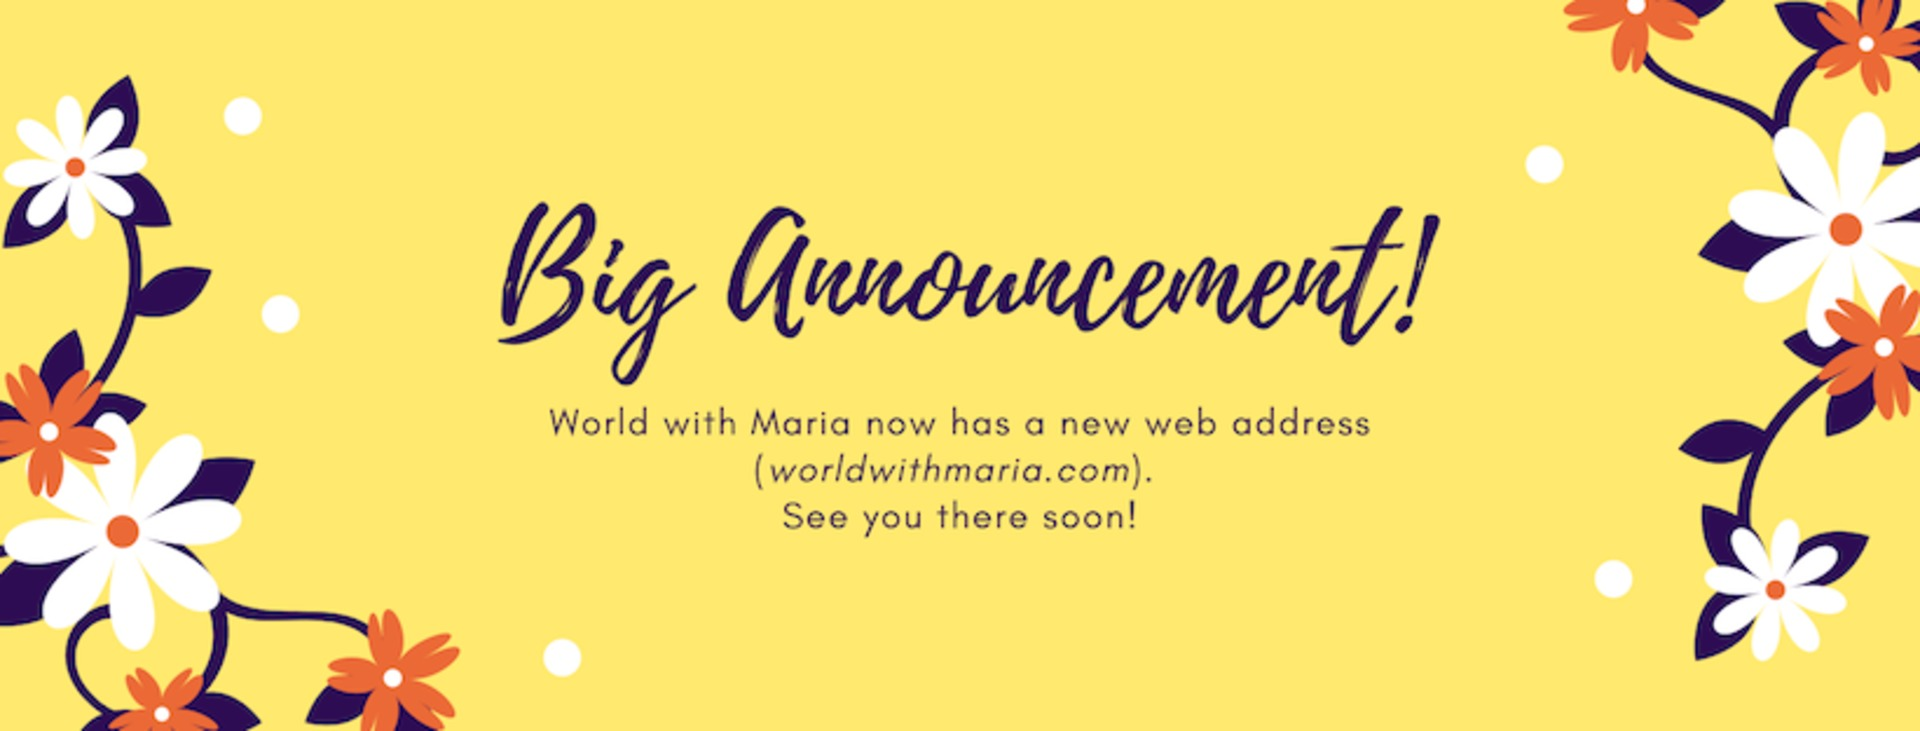 World with Maria - Big Announcement!